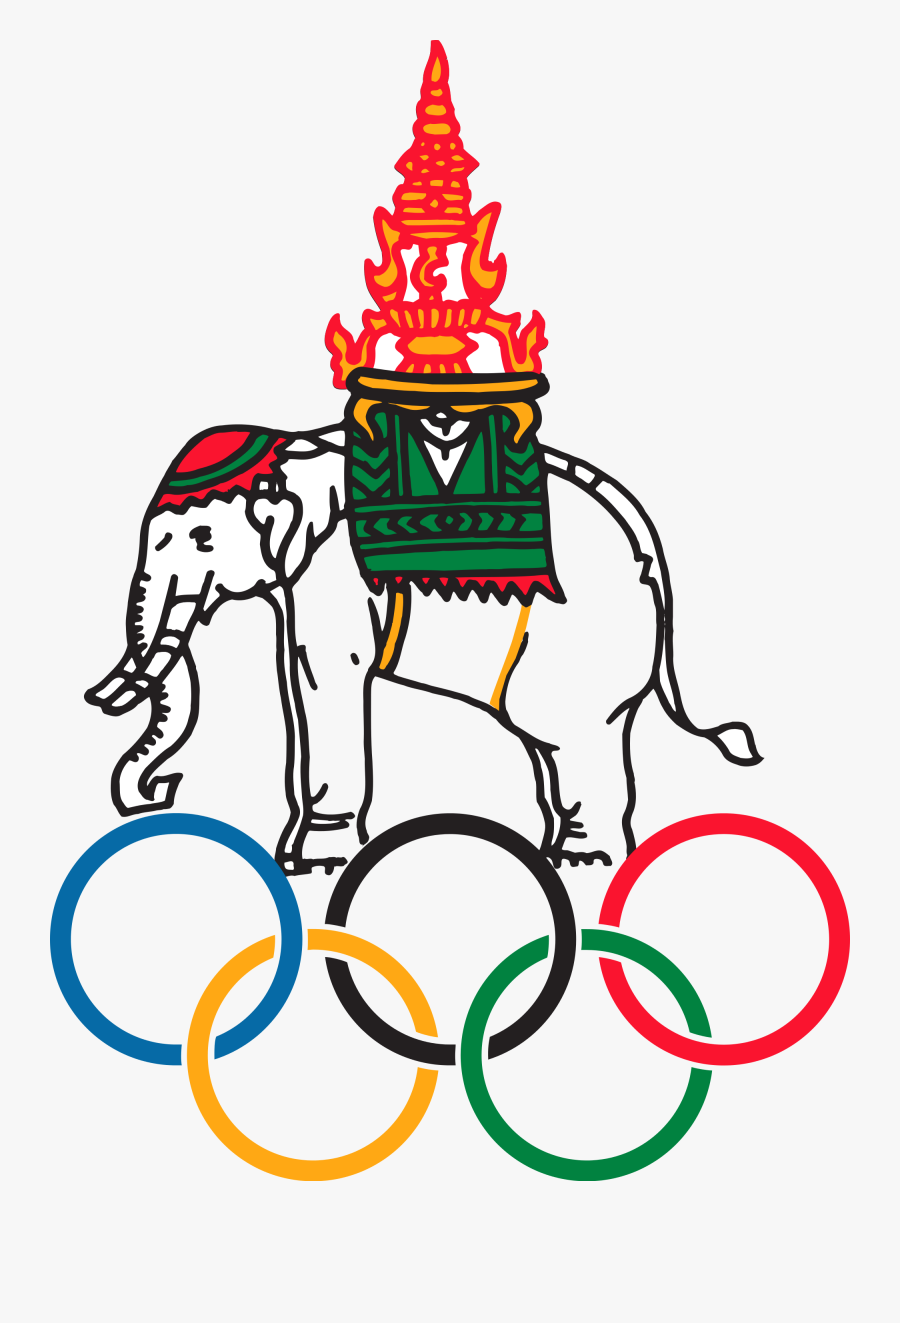 National Olympic Committee Of Thailand Sport Logos - National Olympic Committee Of Thailand, Transparent Clipart